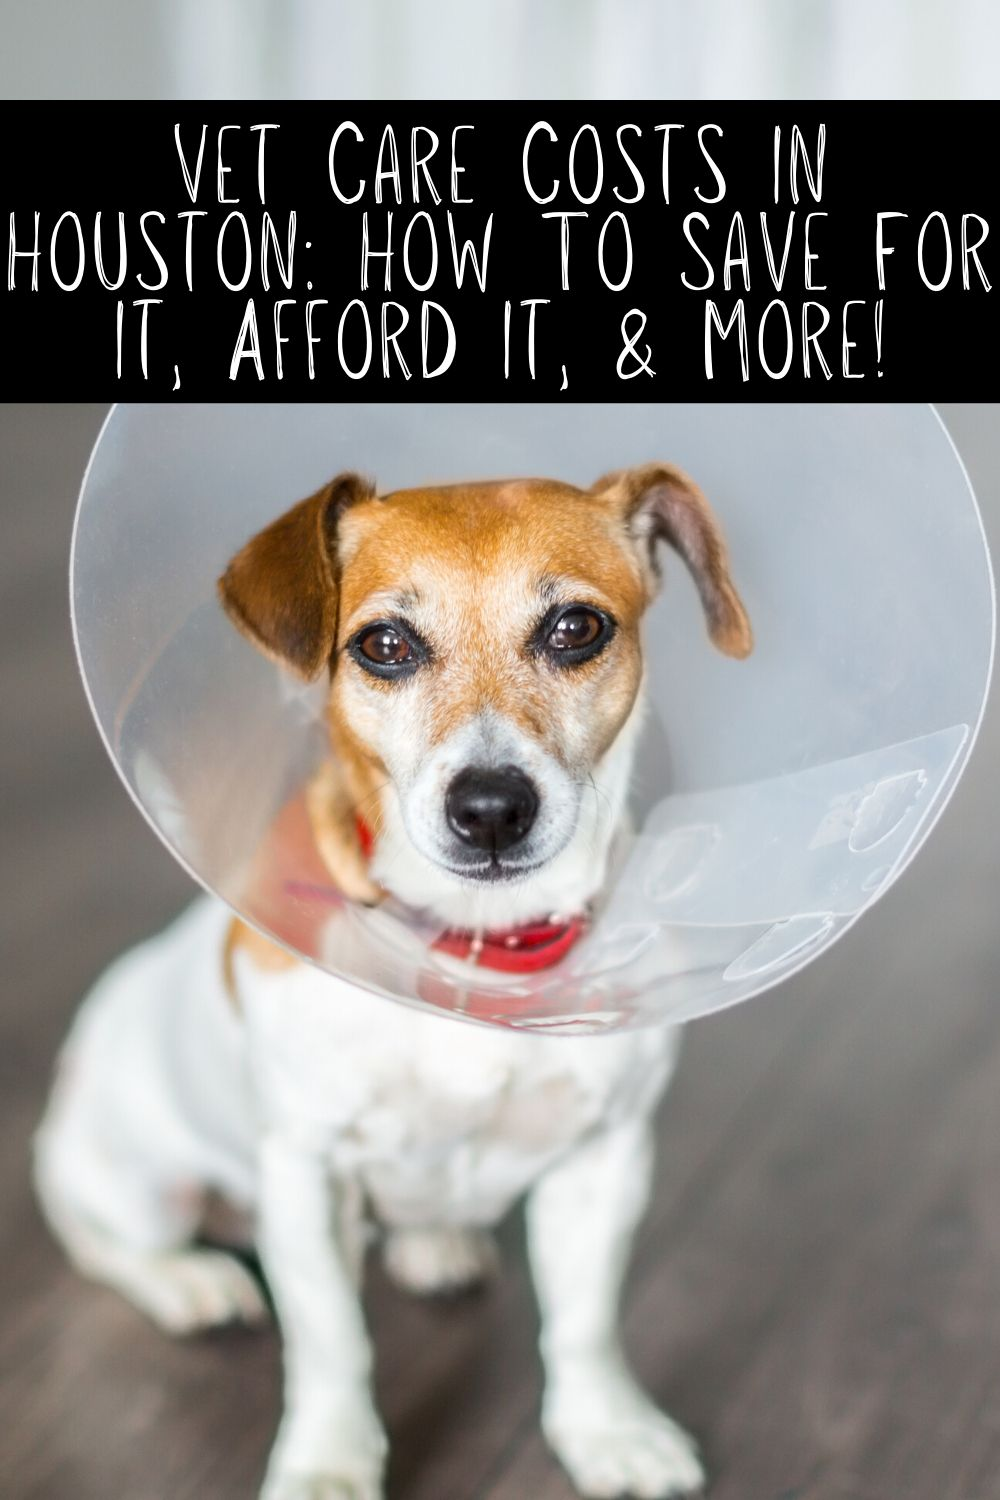 Vet care costs in Houston don't have to be overwhelming. There are ways to prepare for vet care costs and we're going to walk you through it today! Also check out some of the great Houston veterinarian choices below for all of your pet care needs.